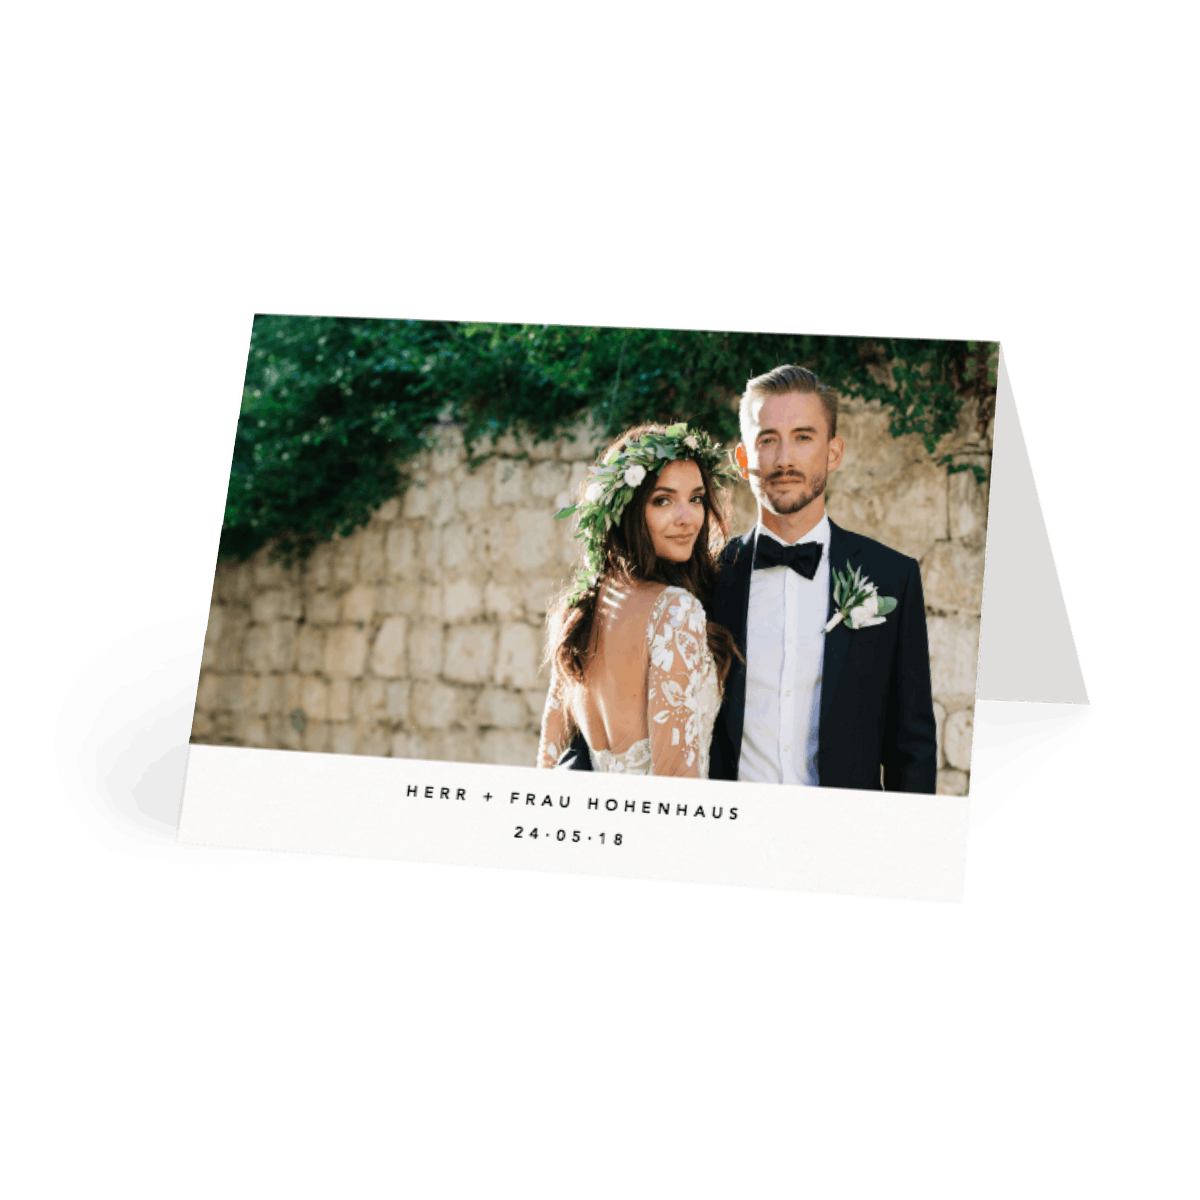 Https%3a%2f%2fwww.papier.com%2fproduct image%2f44009%2f14%2flandscape wedding photo 6624 vorderseite 1548347763.png?ixlib=rb 1.1